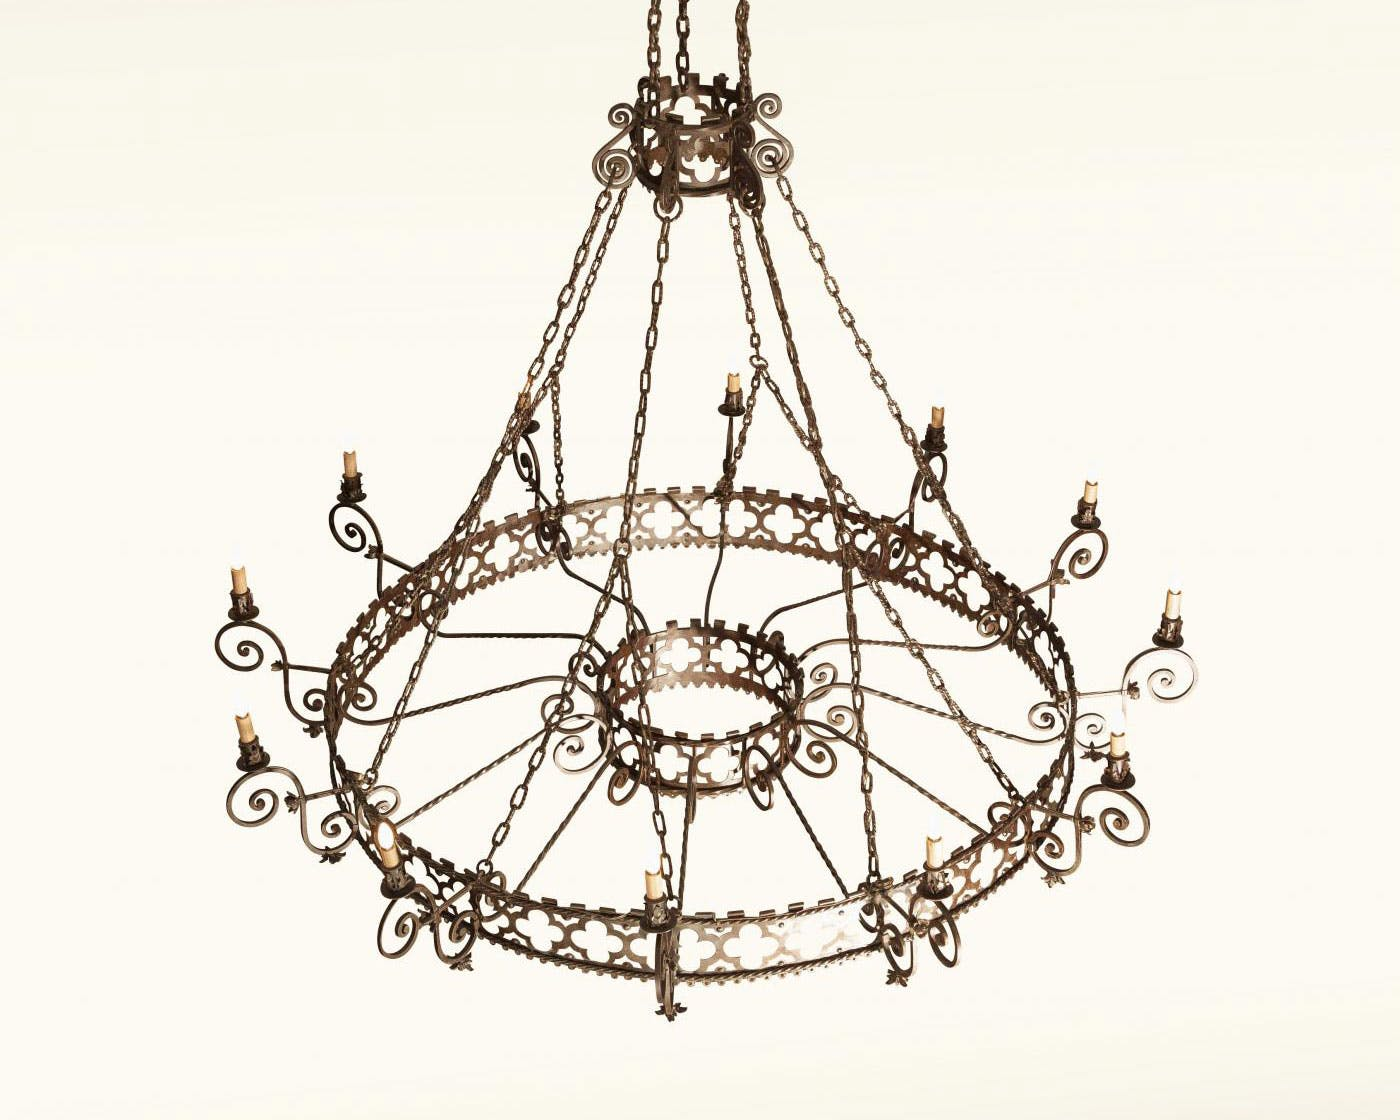 Wrought Iron Rectangular Chandelier Grand Colonial Wrought Iron Chandelier 12 Light The